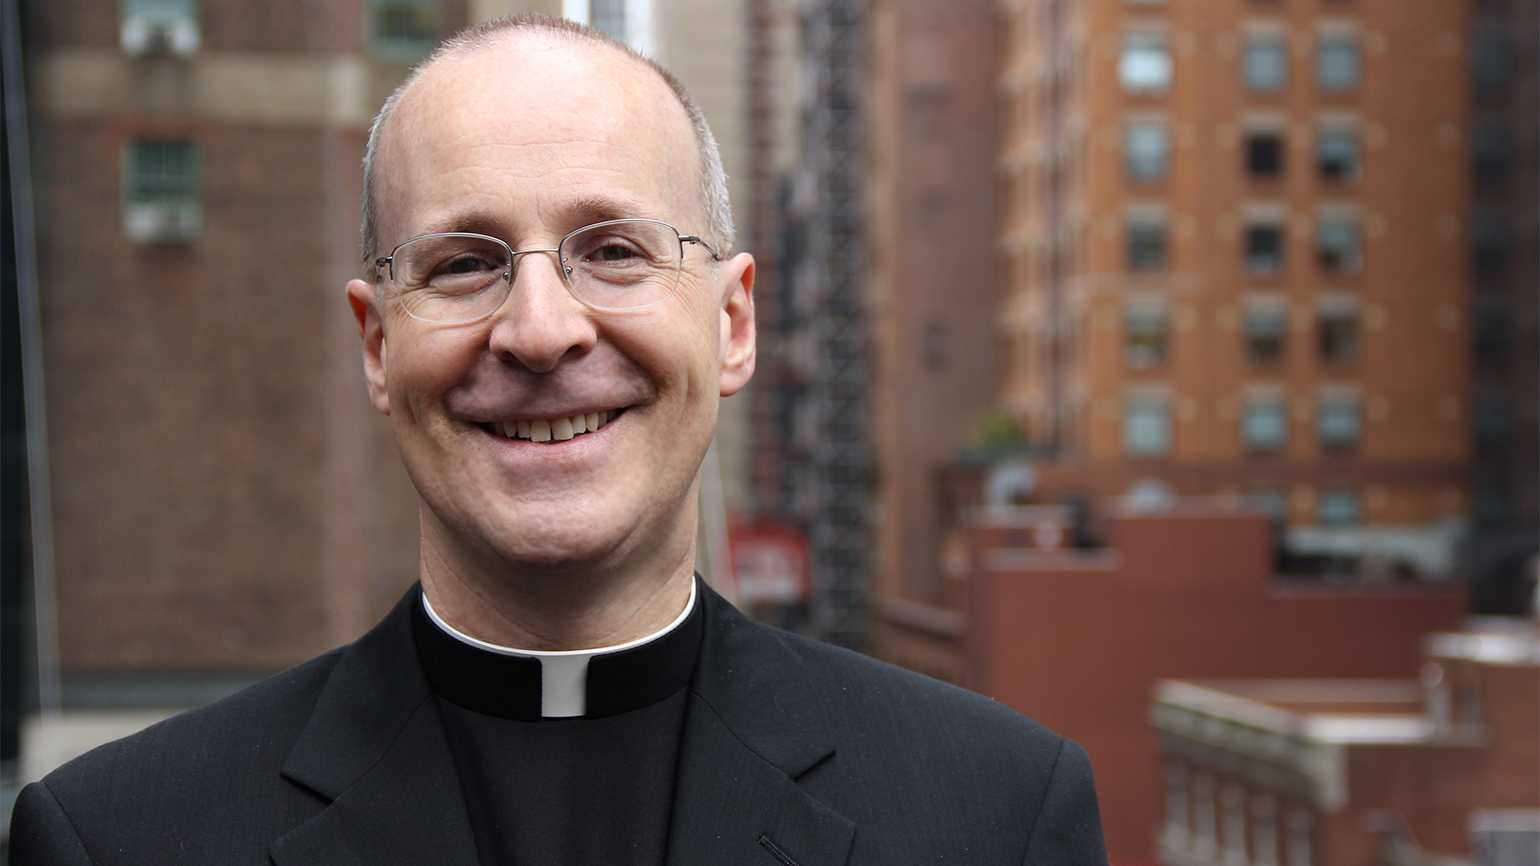 Jesuit priest and best-selling author Father James Martin